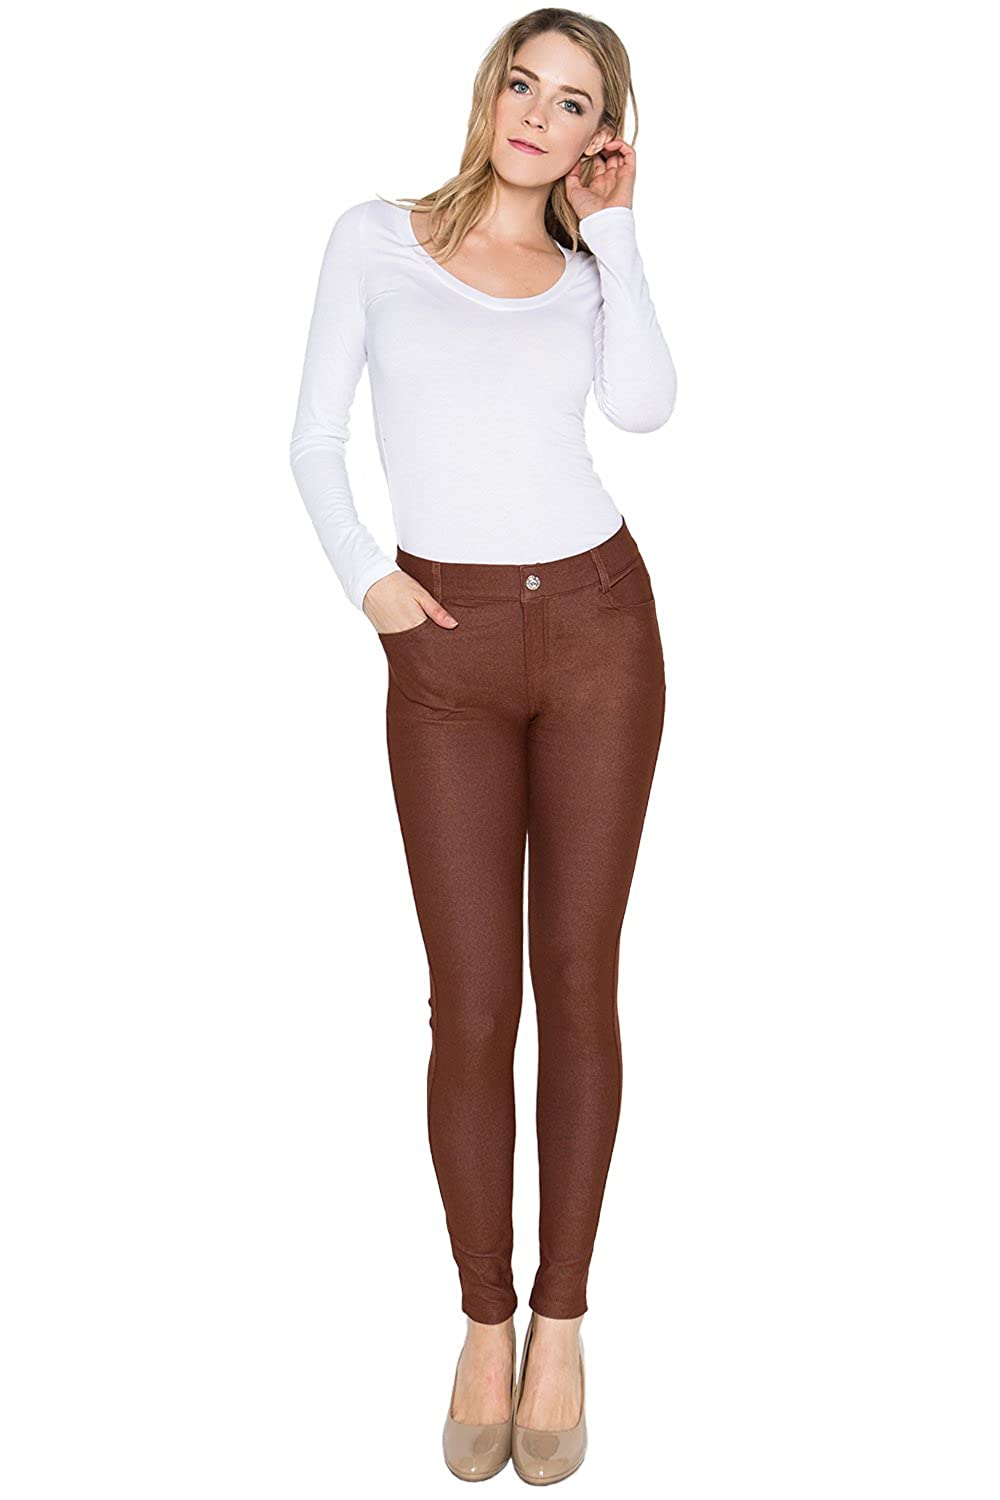 Coffee Trinity Jeans Women's Pull On Solid Fashion Skinny Jeggings Pants (Regular & Plus)